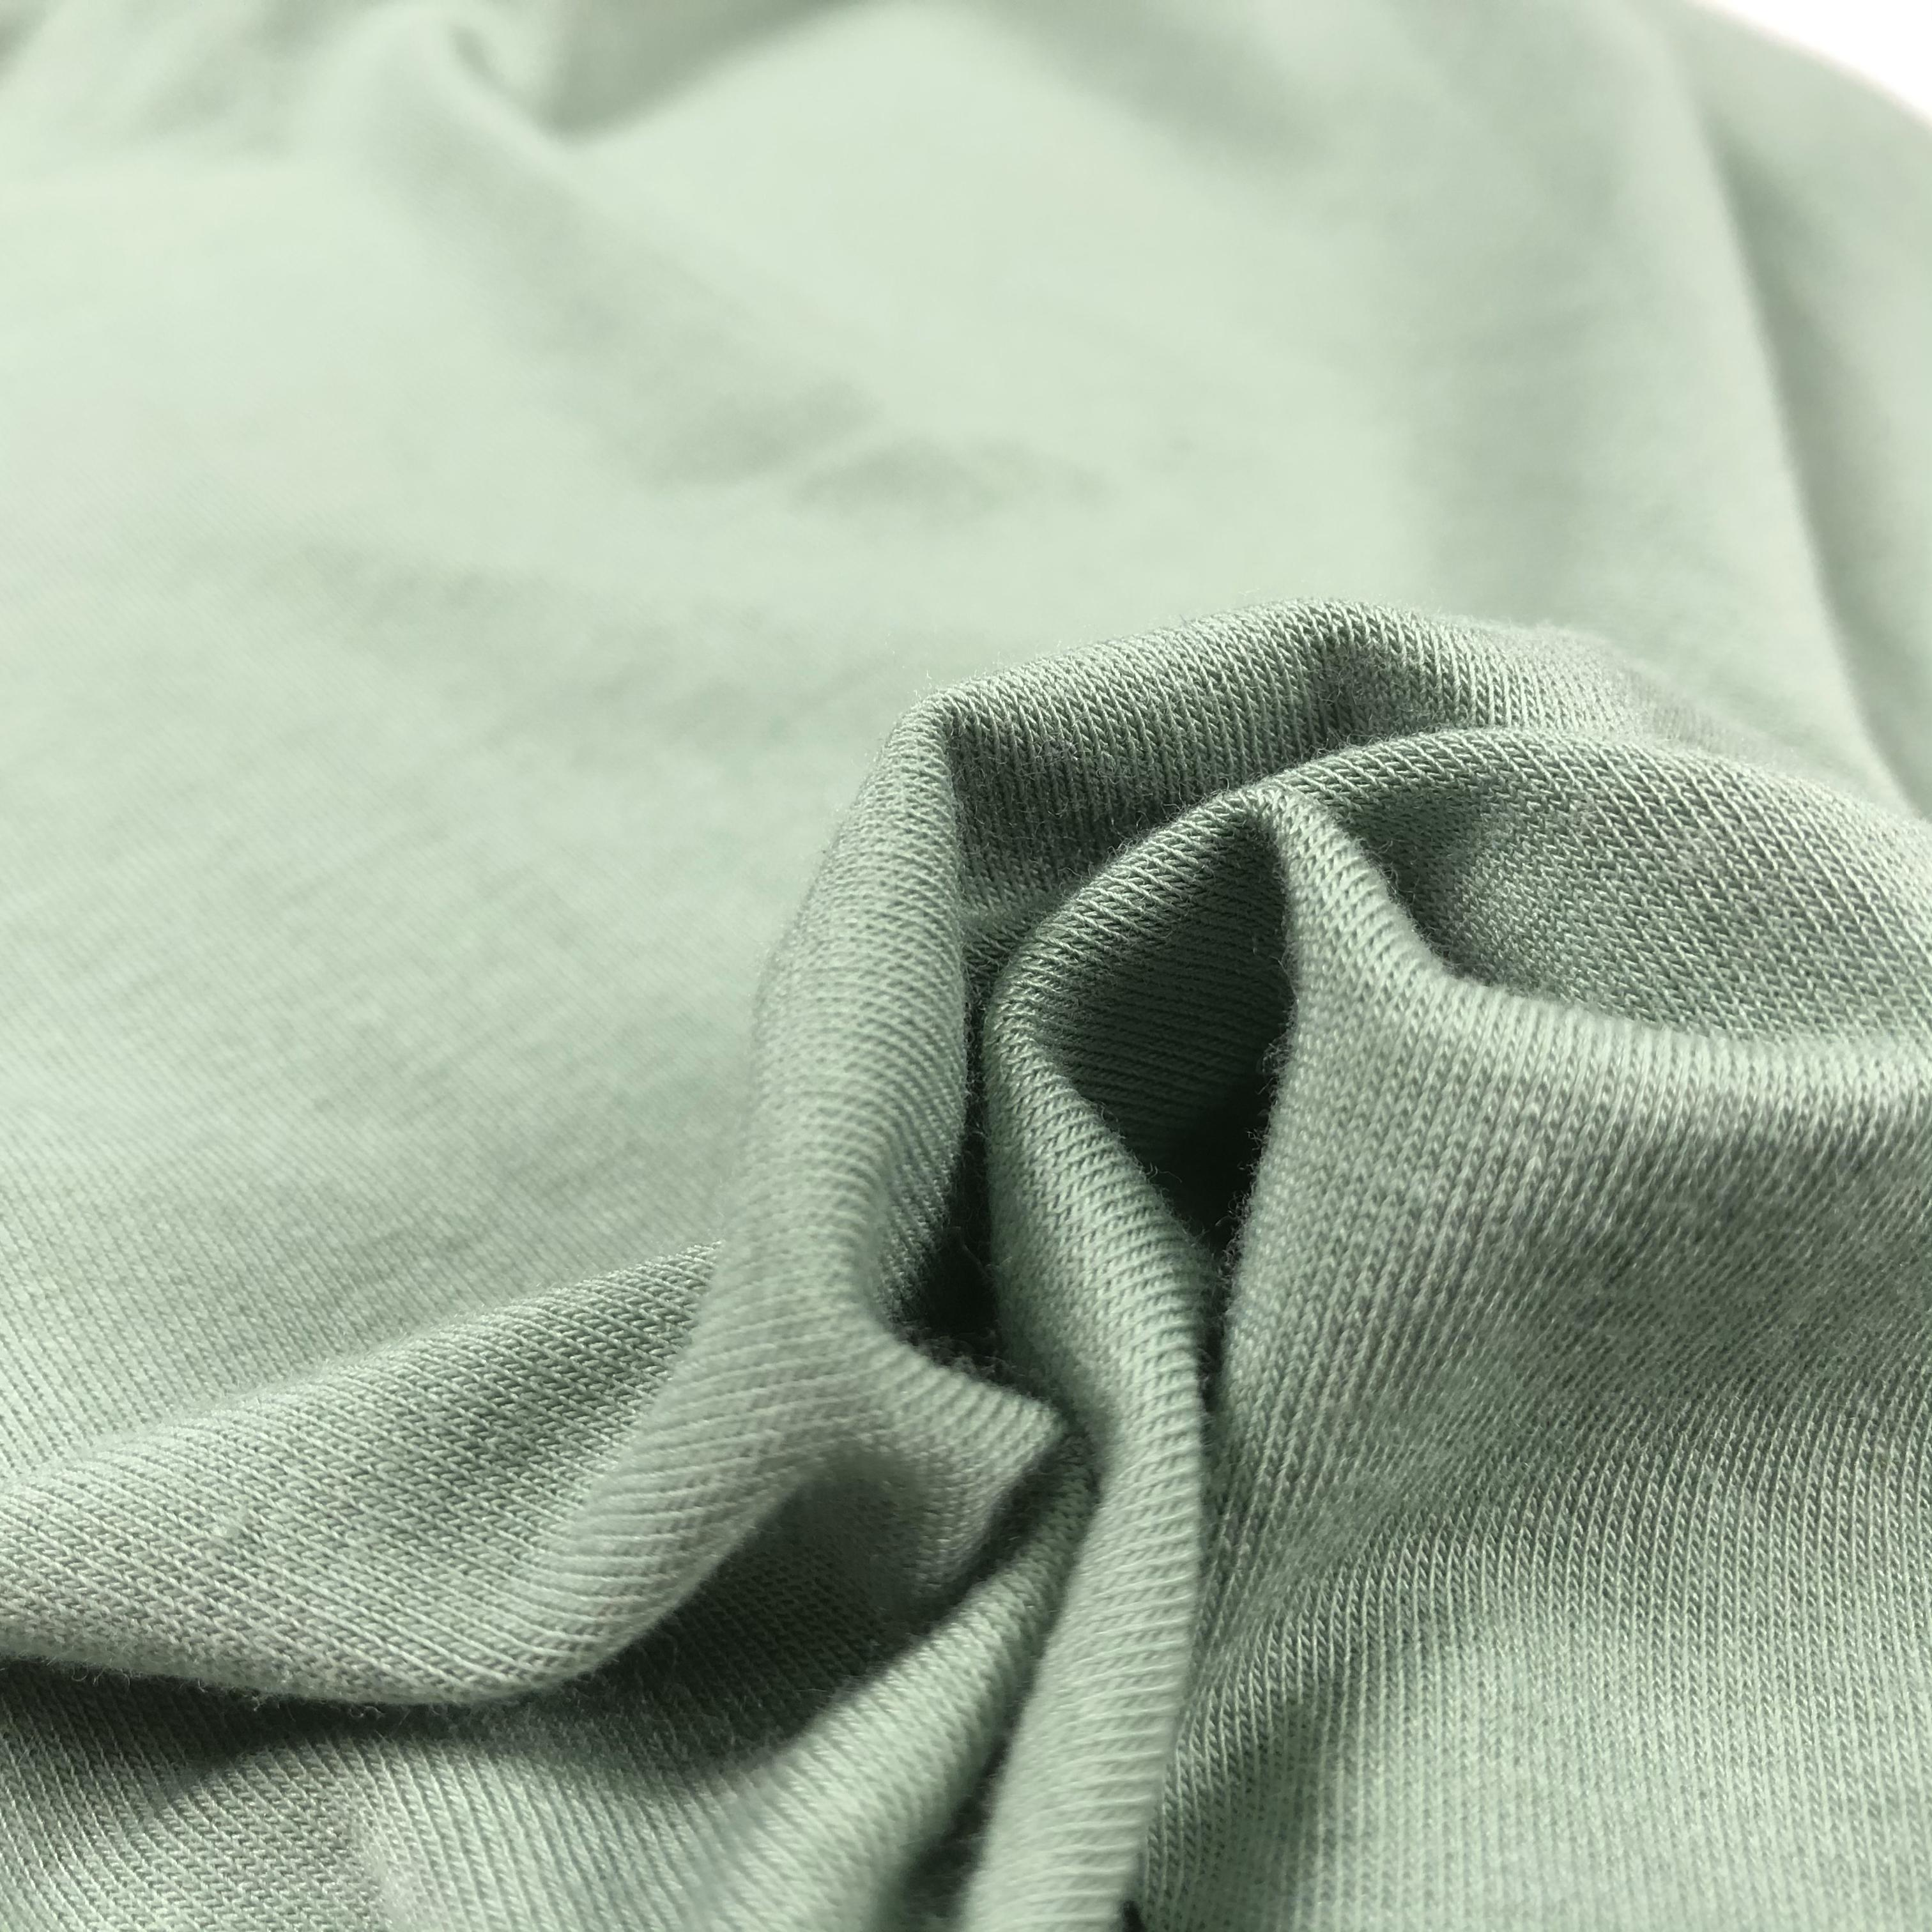 Regenerated cellulose jersey fabric knitted plain dyed stretch blended modal cotton fabric for Apparel T-shirts